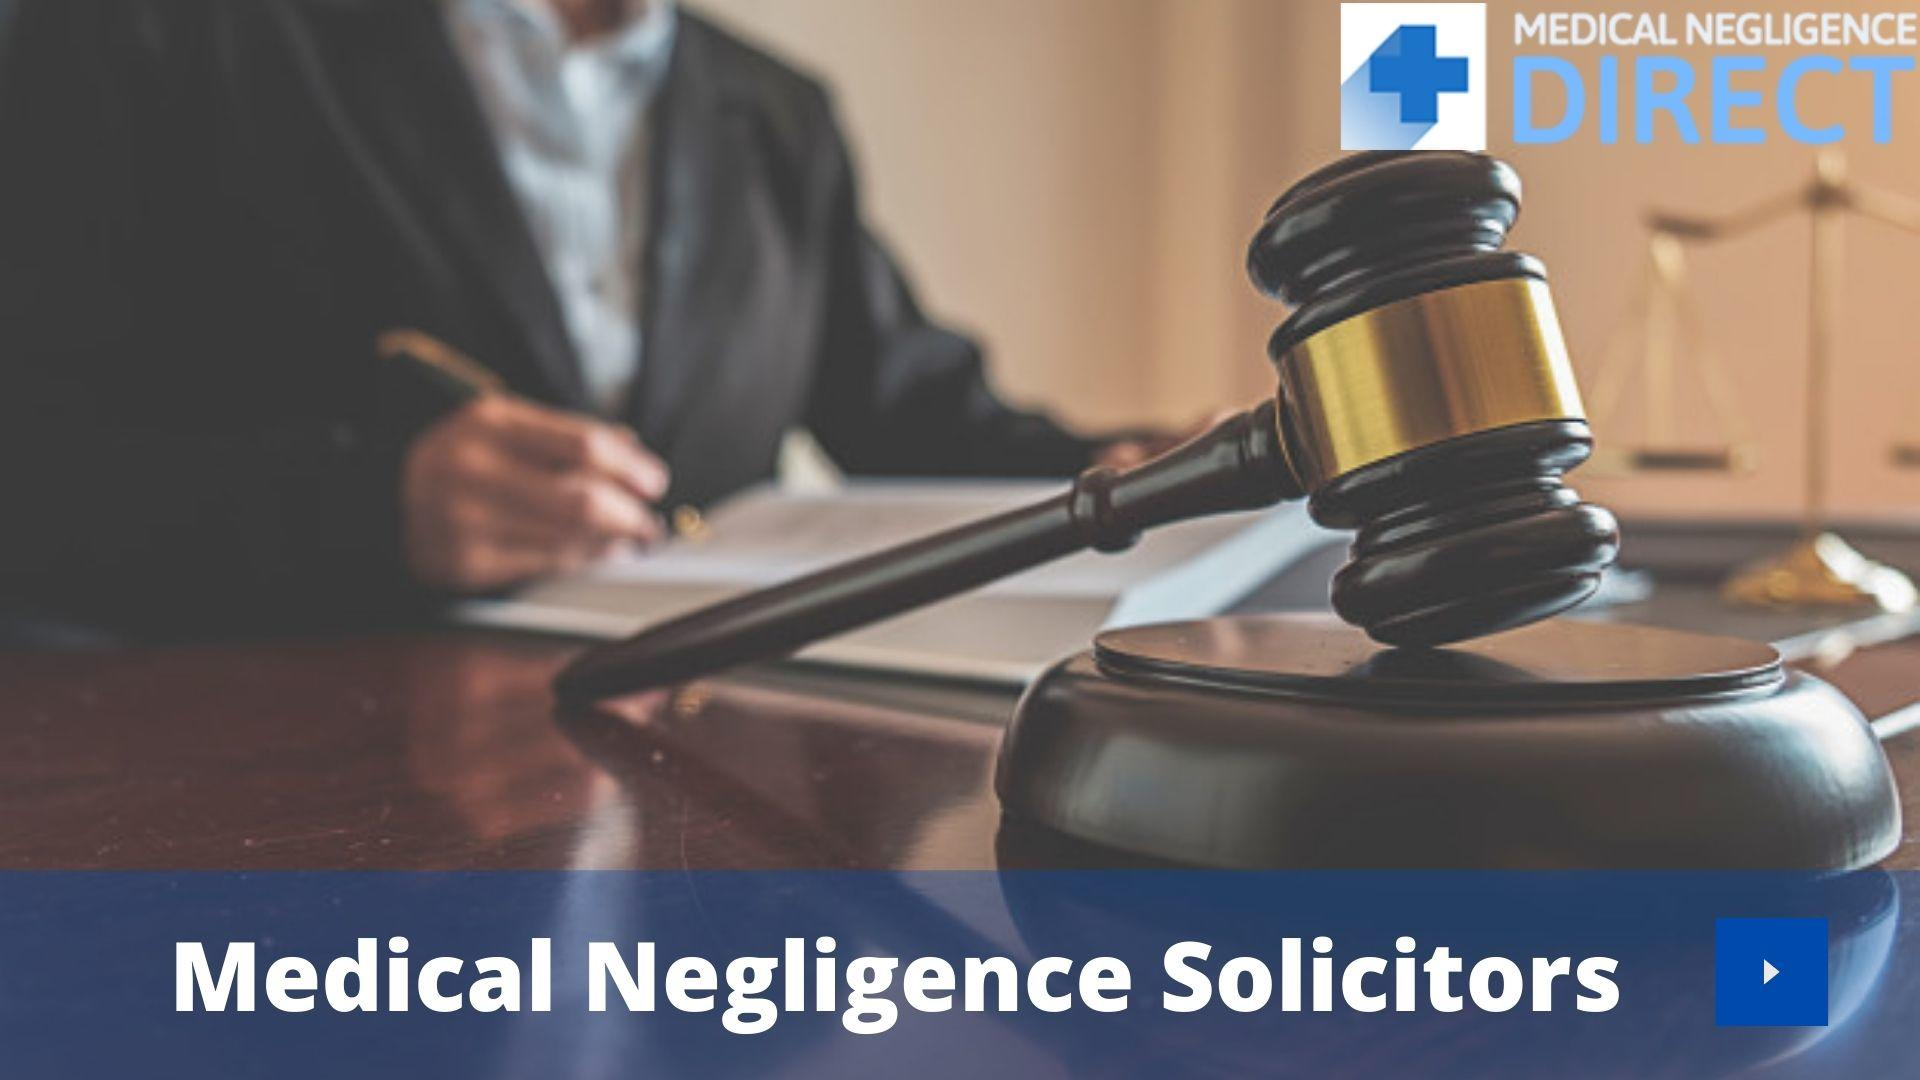 Image - Are you looking for the best solicitors in your area for #MedicalNegligenceClaims? Contact our team who can h...